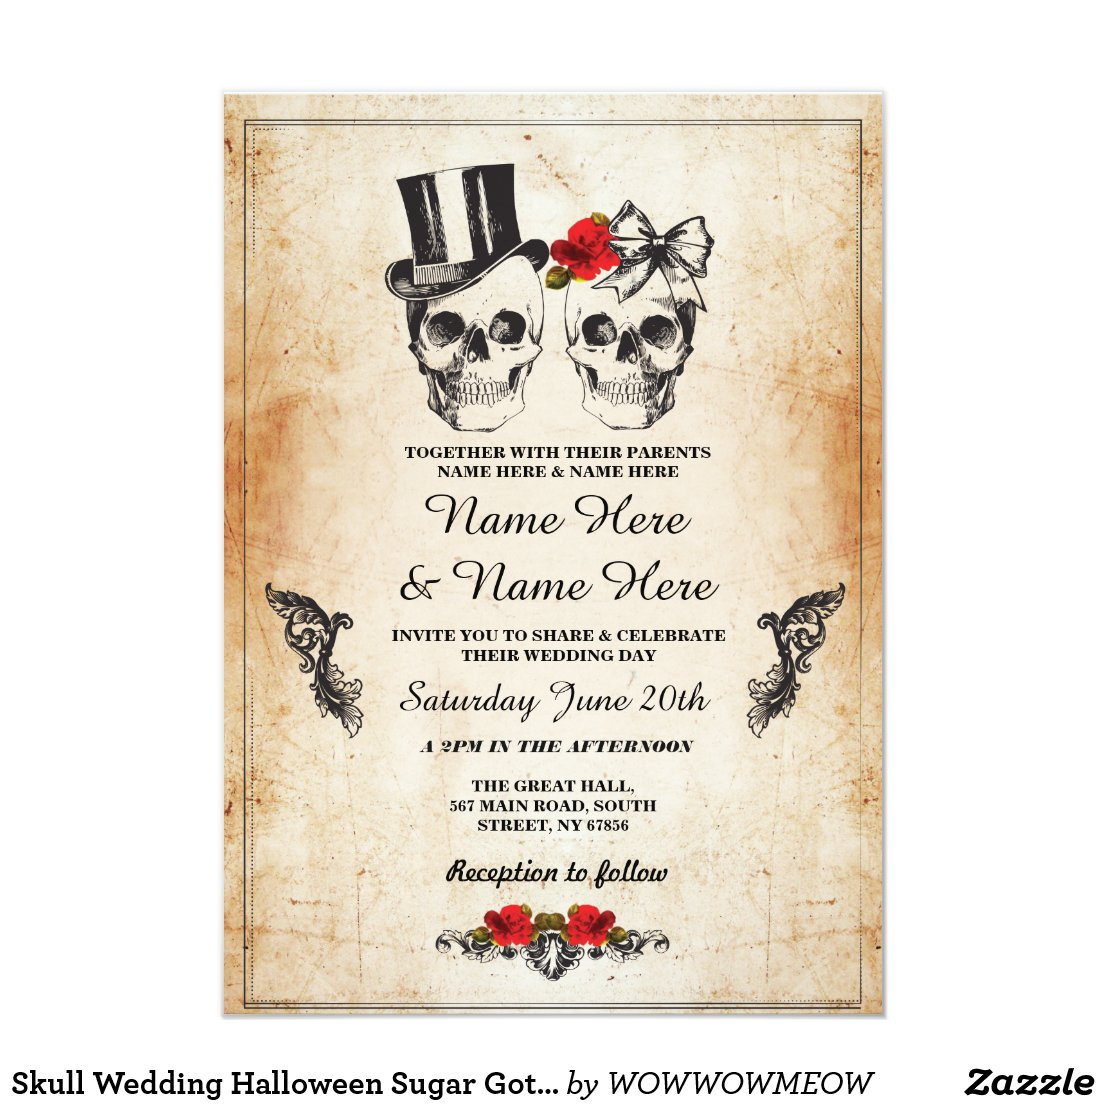 Skull Wedding Halloween Sugar Gothic Floral Invite